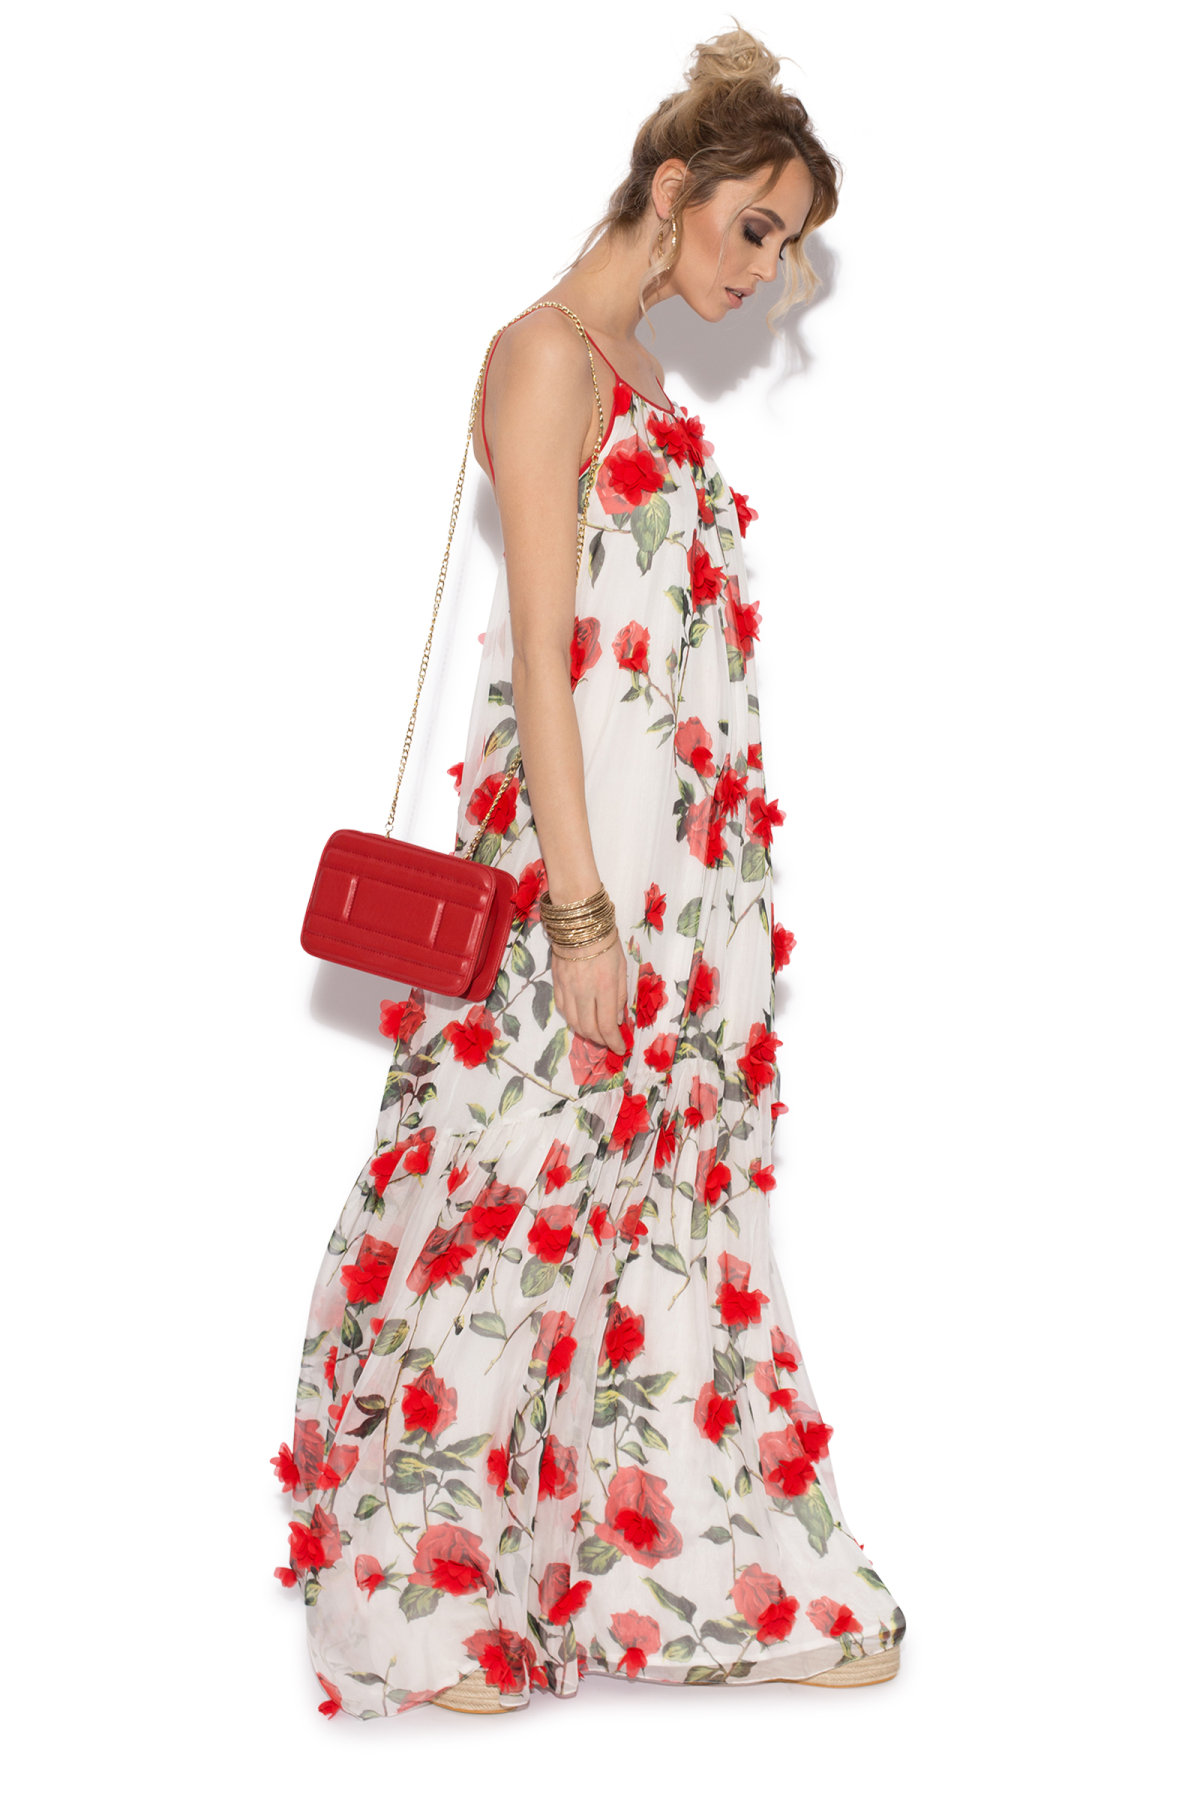 White maxi 3d floral details dress rc8613 nissa front view mightylinksfo